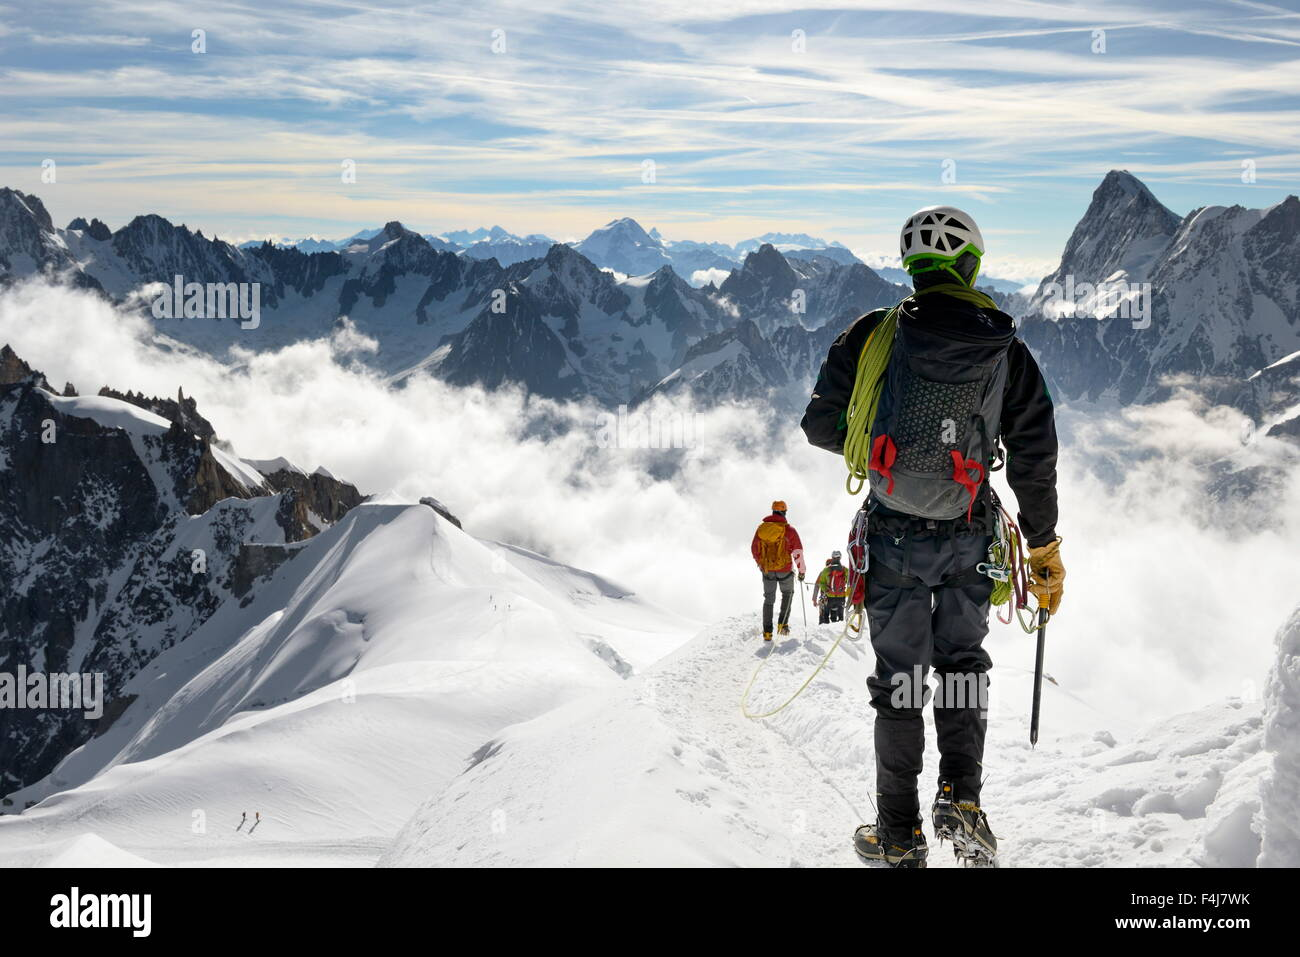 Mountaineers and climbers, Aiguille du Midi, Mont Blanc Massif, Chamonix, French Alps, Haute Savoie, France, Europe - Stock Image